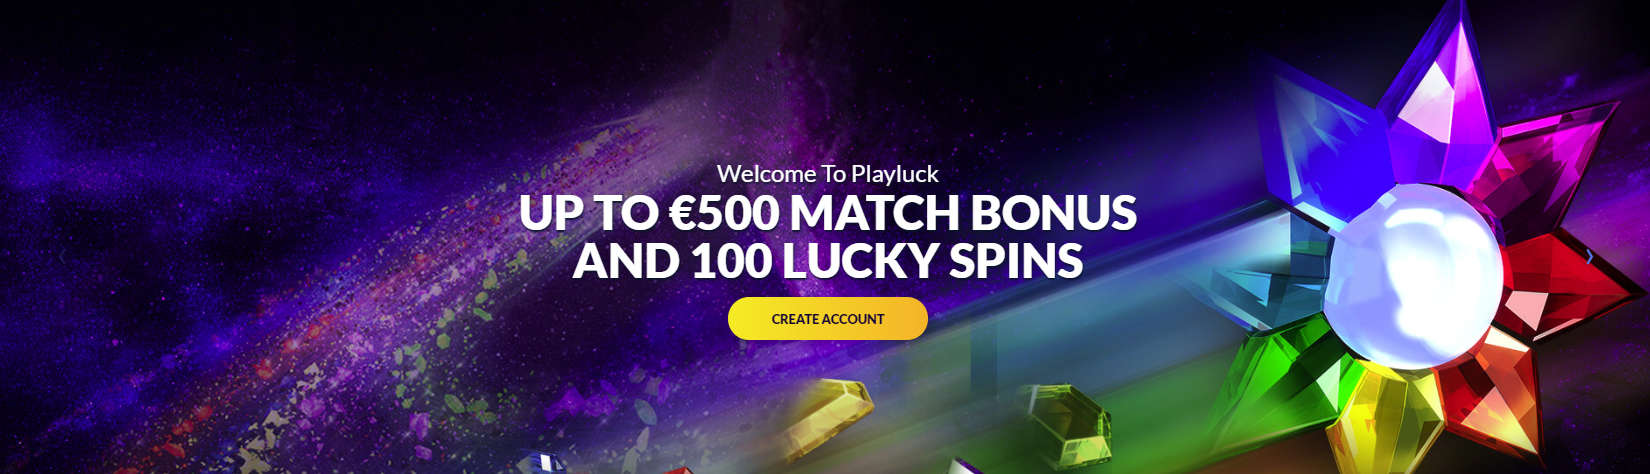 Playluck bonus (not for UK)